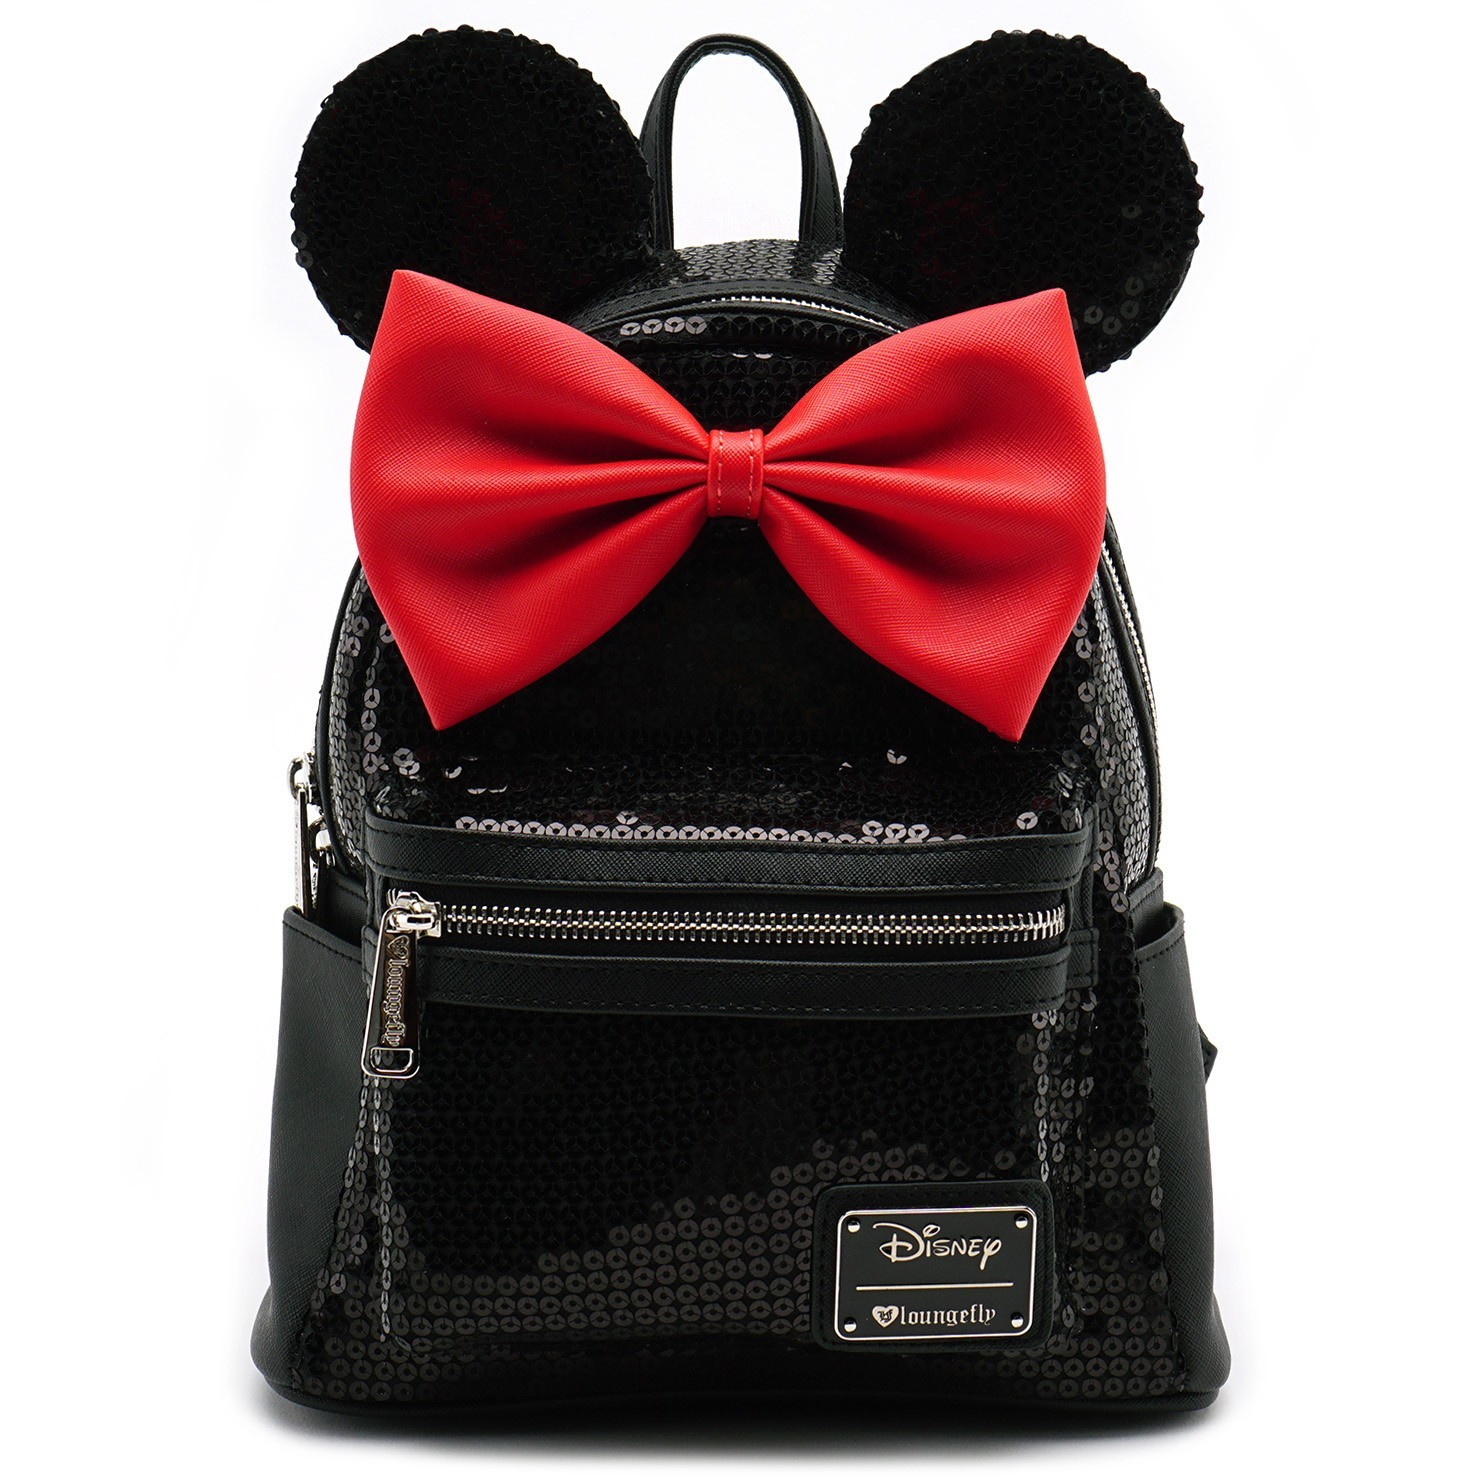 c7f90679051 ... Loungefly Disney Minnie Mouse - Minnie Black Sequin Mini Backpack.  Previous. Next